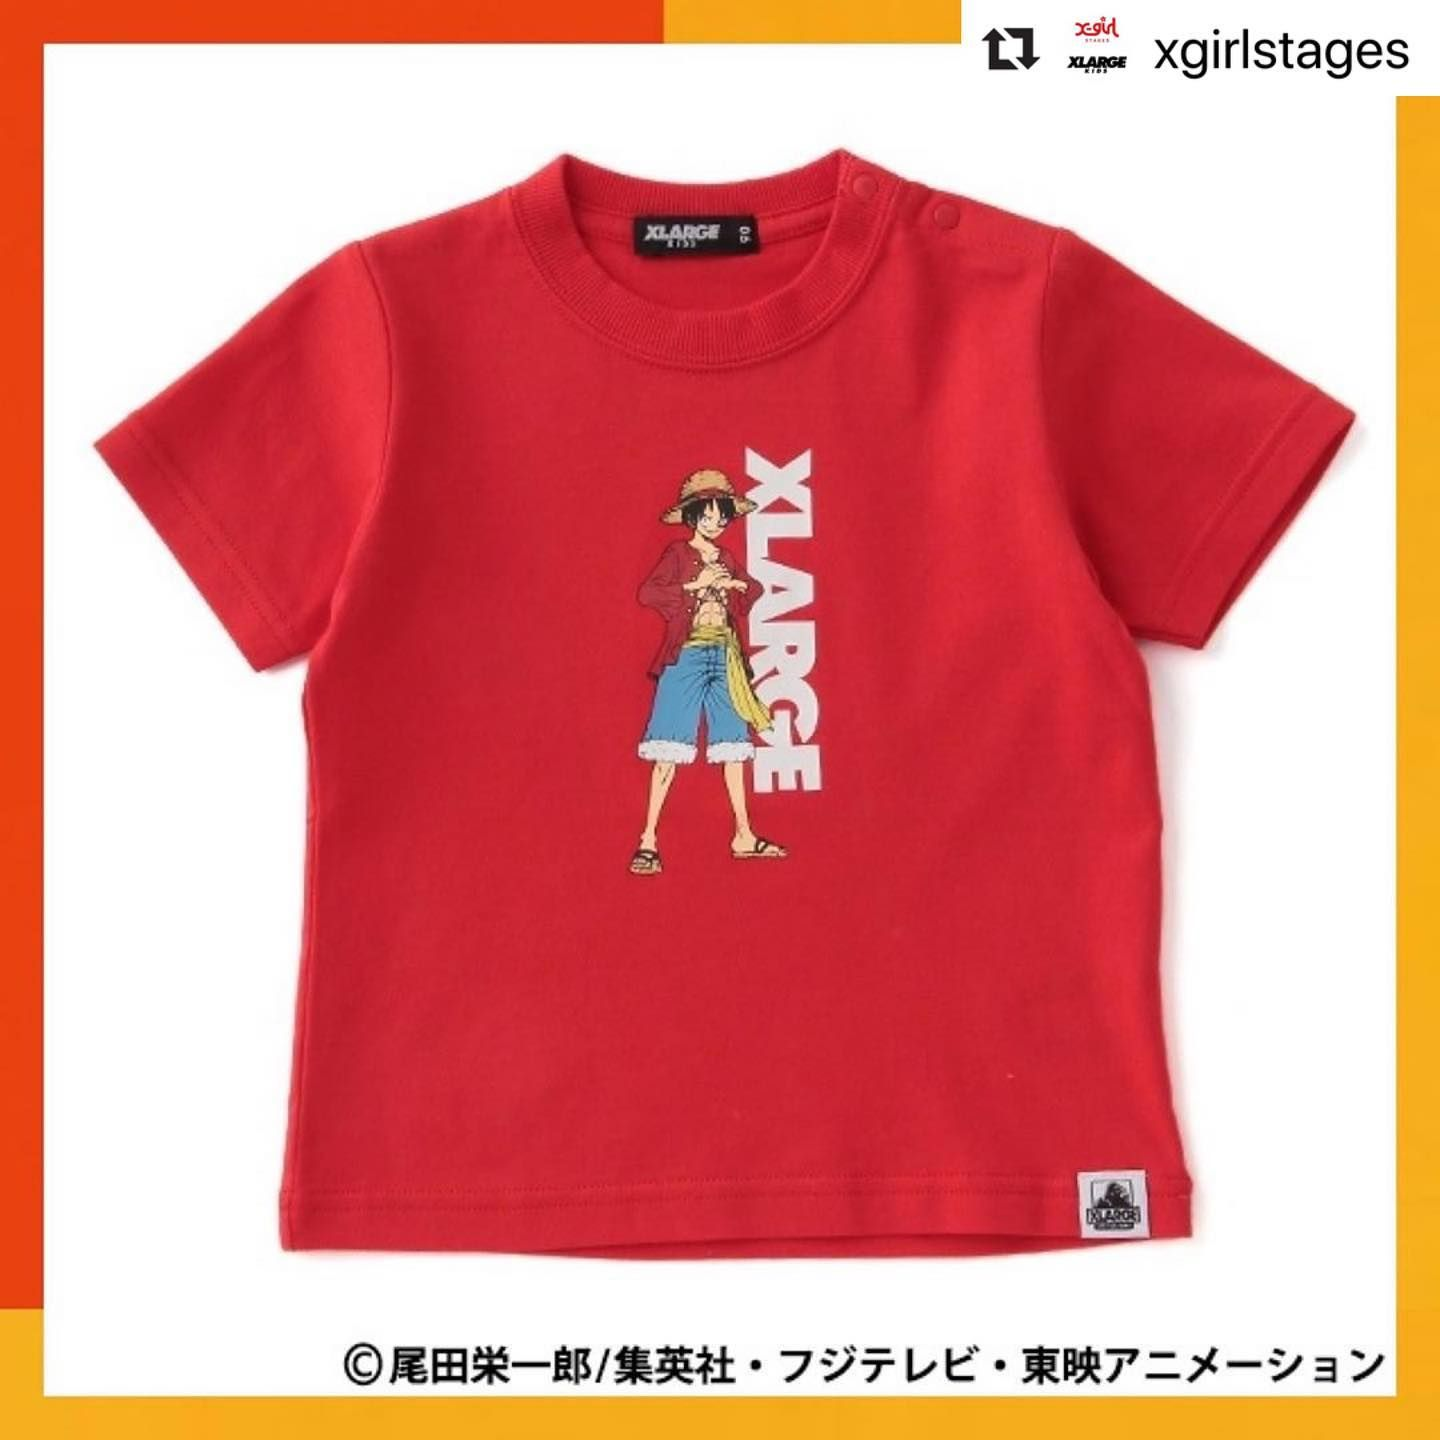 Xgirlstages Xlarge Kids Recommend Item エクストララージ キッズと 人気アニメ One Piece ワンピース のコラボアイテム Onepiece ロゴプ Tシャツ デザイン Tシャツ デザイン かっこいい Tシャツ プリント